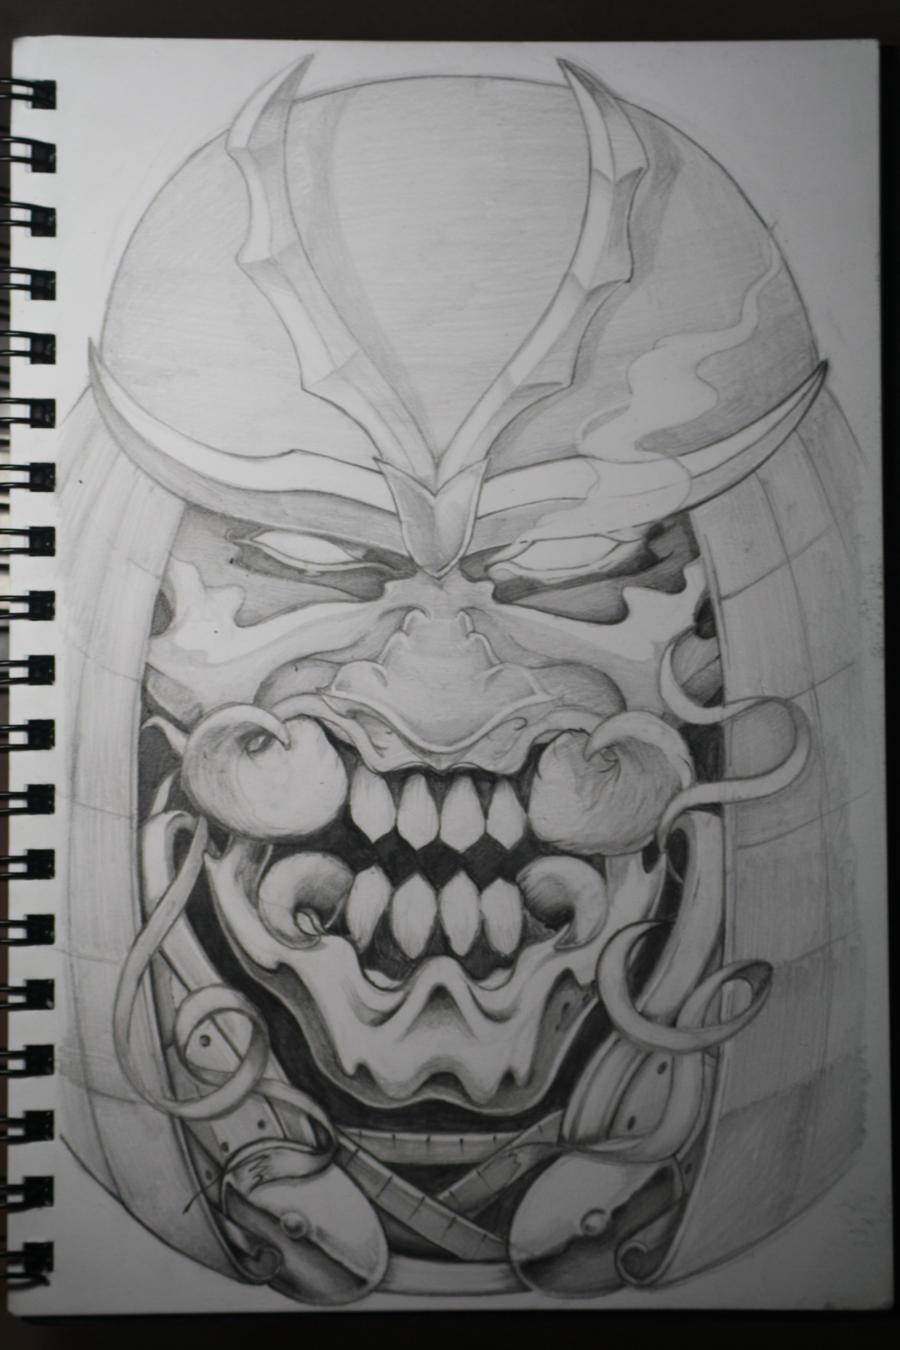 samurai mask by alboyer on DeviantArt